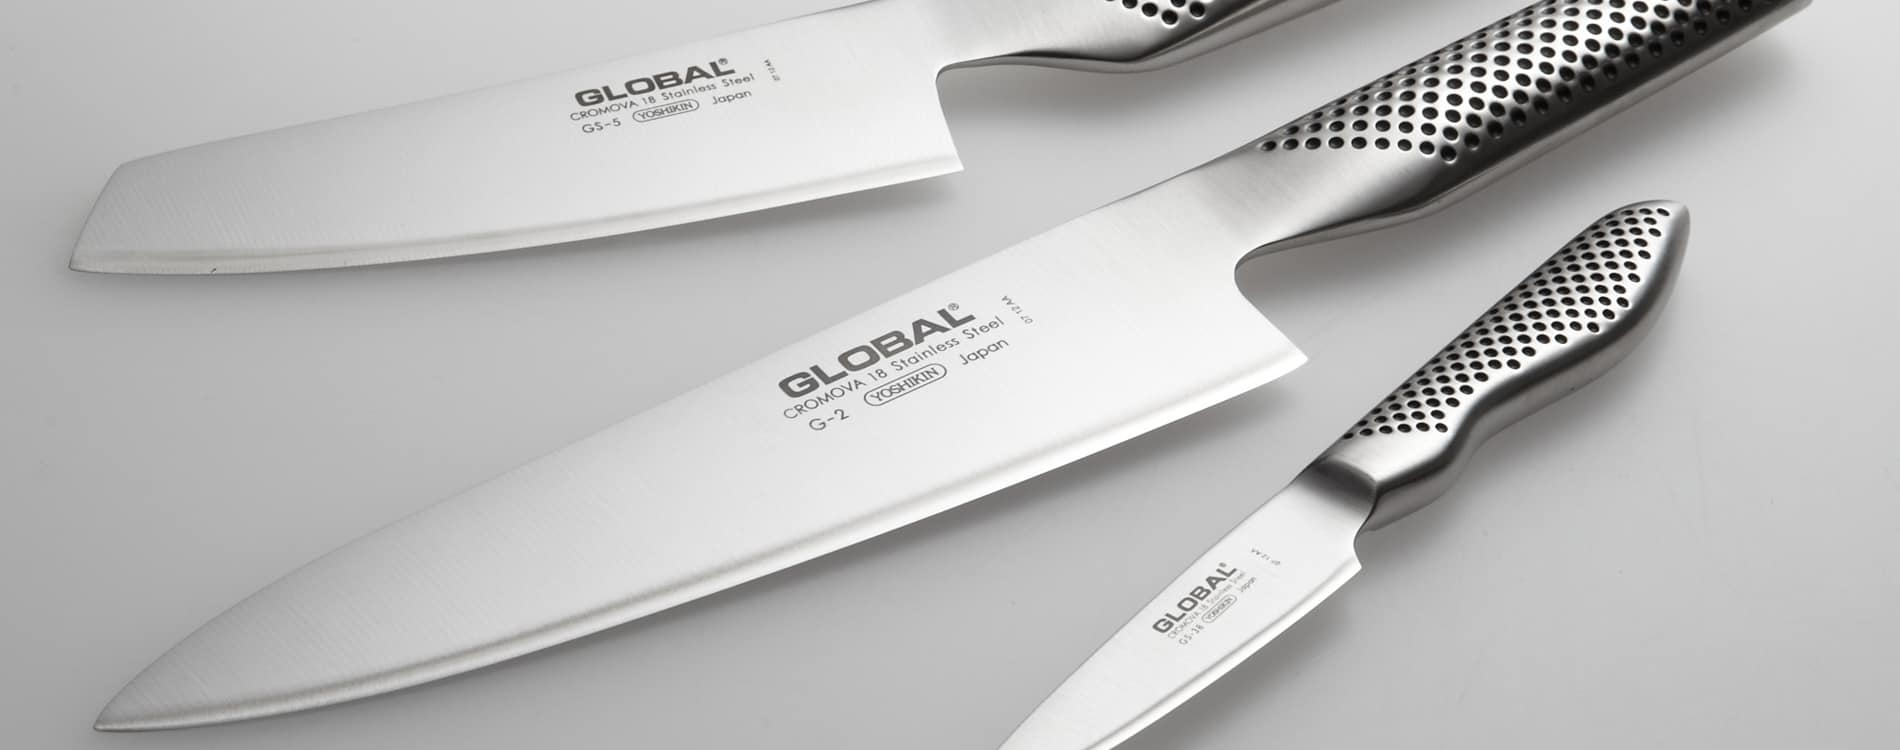 global kitchen knives kitchen knives chef knife sets shun knives global knives 11888